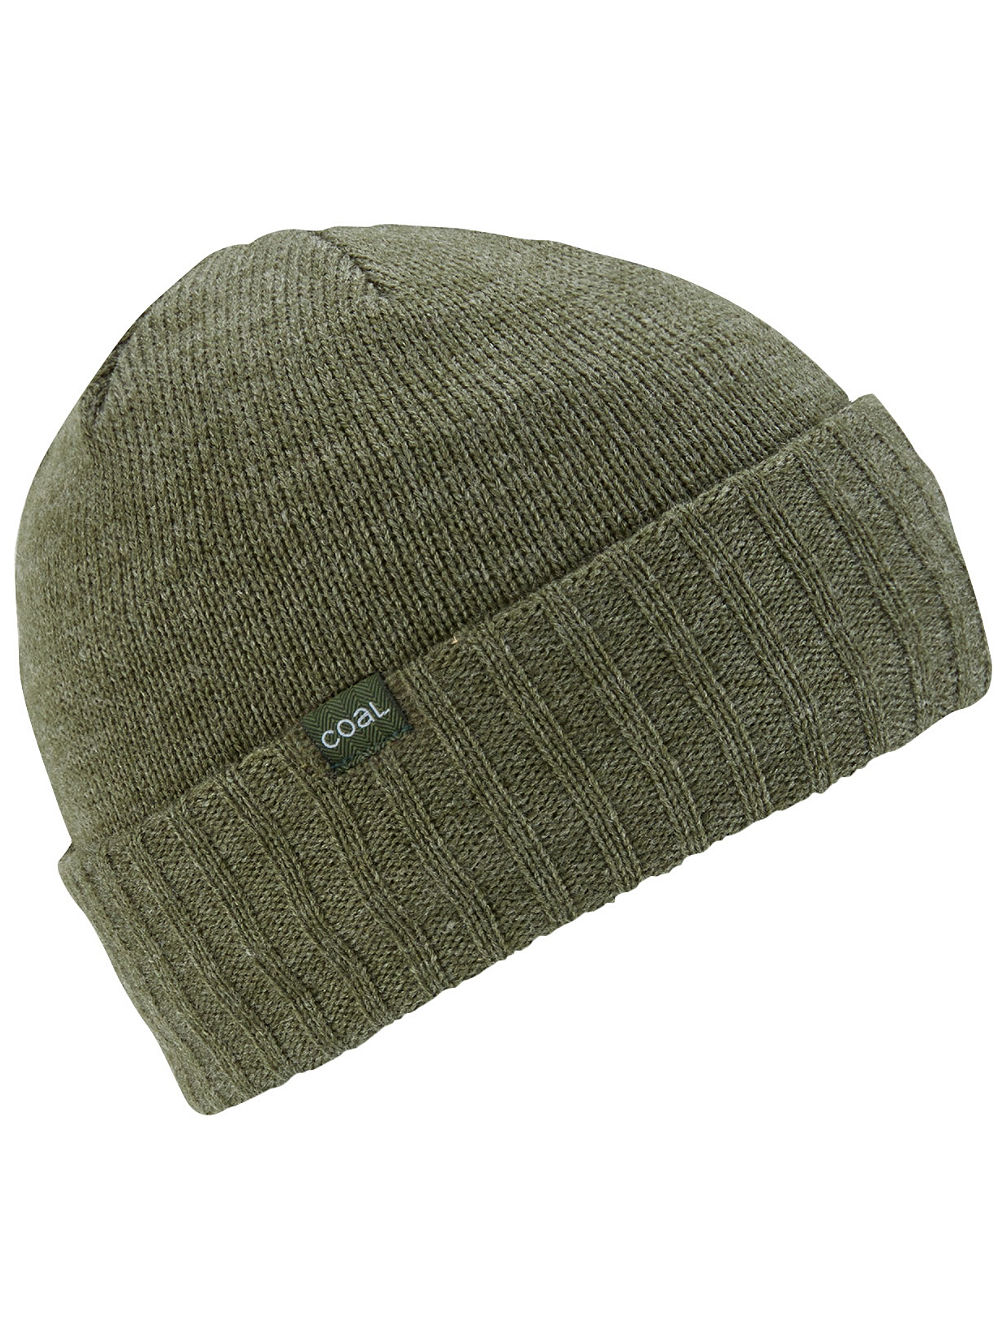 The Rogers Beanie